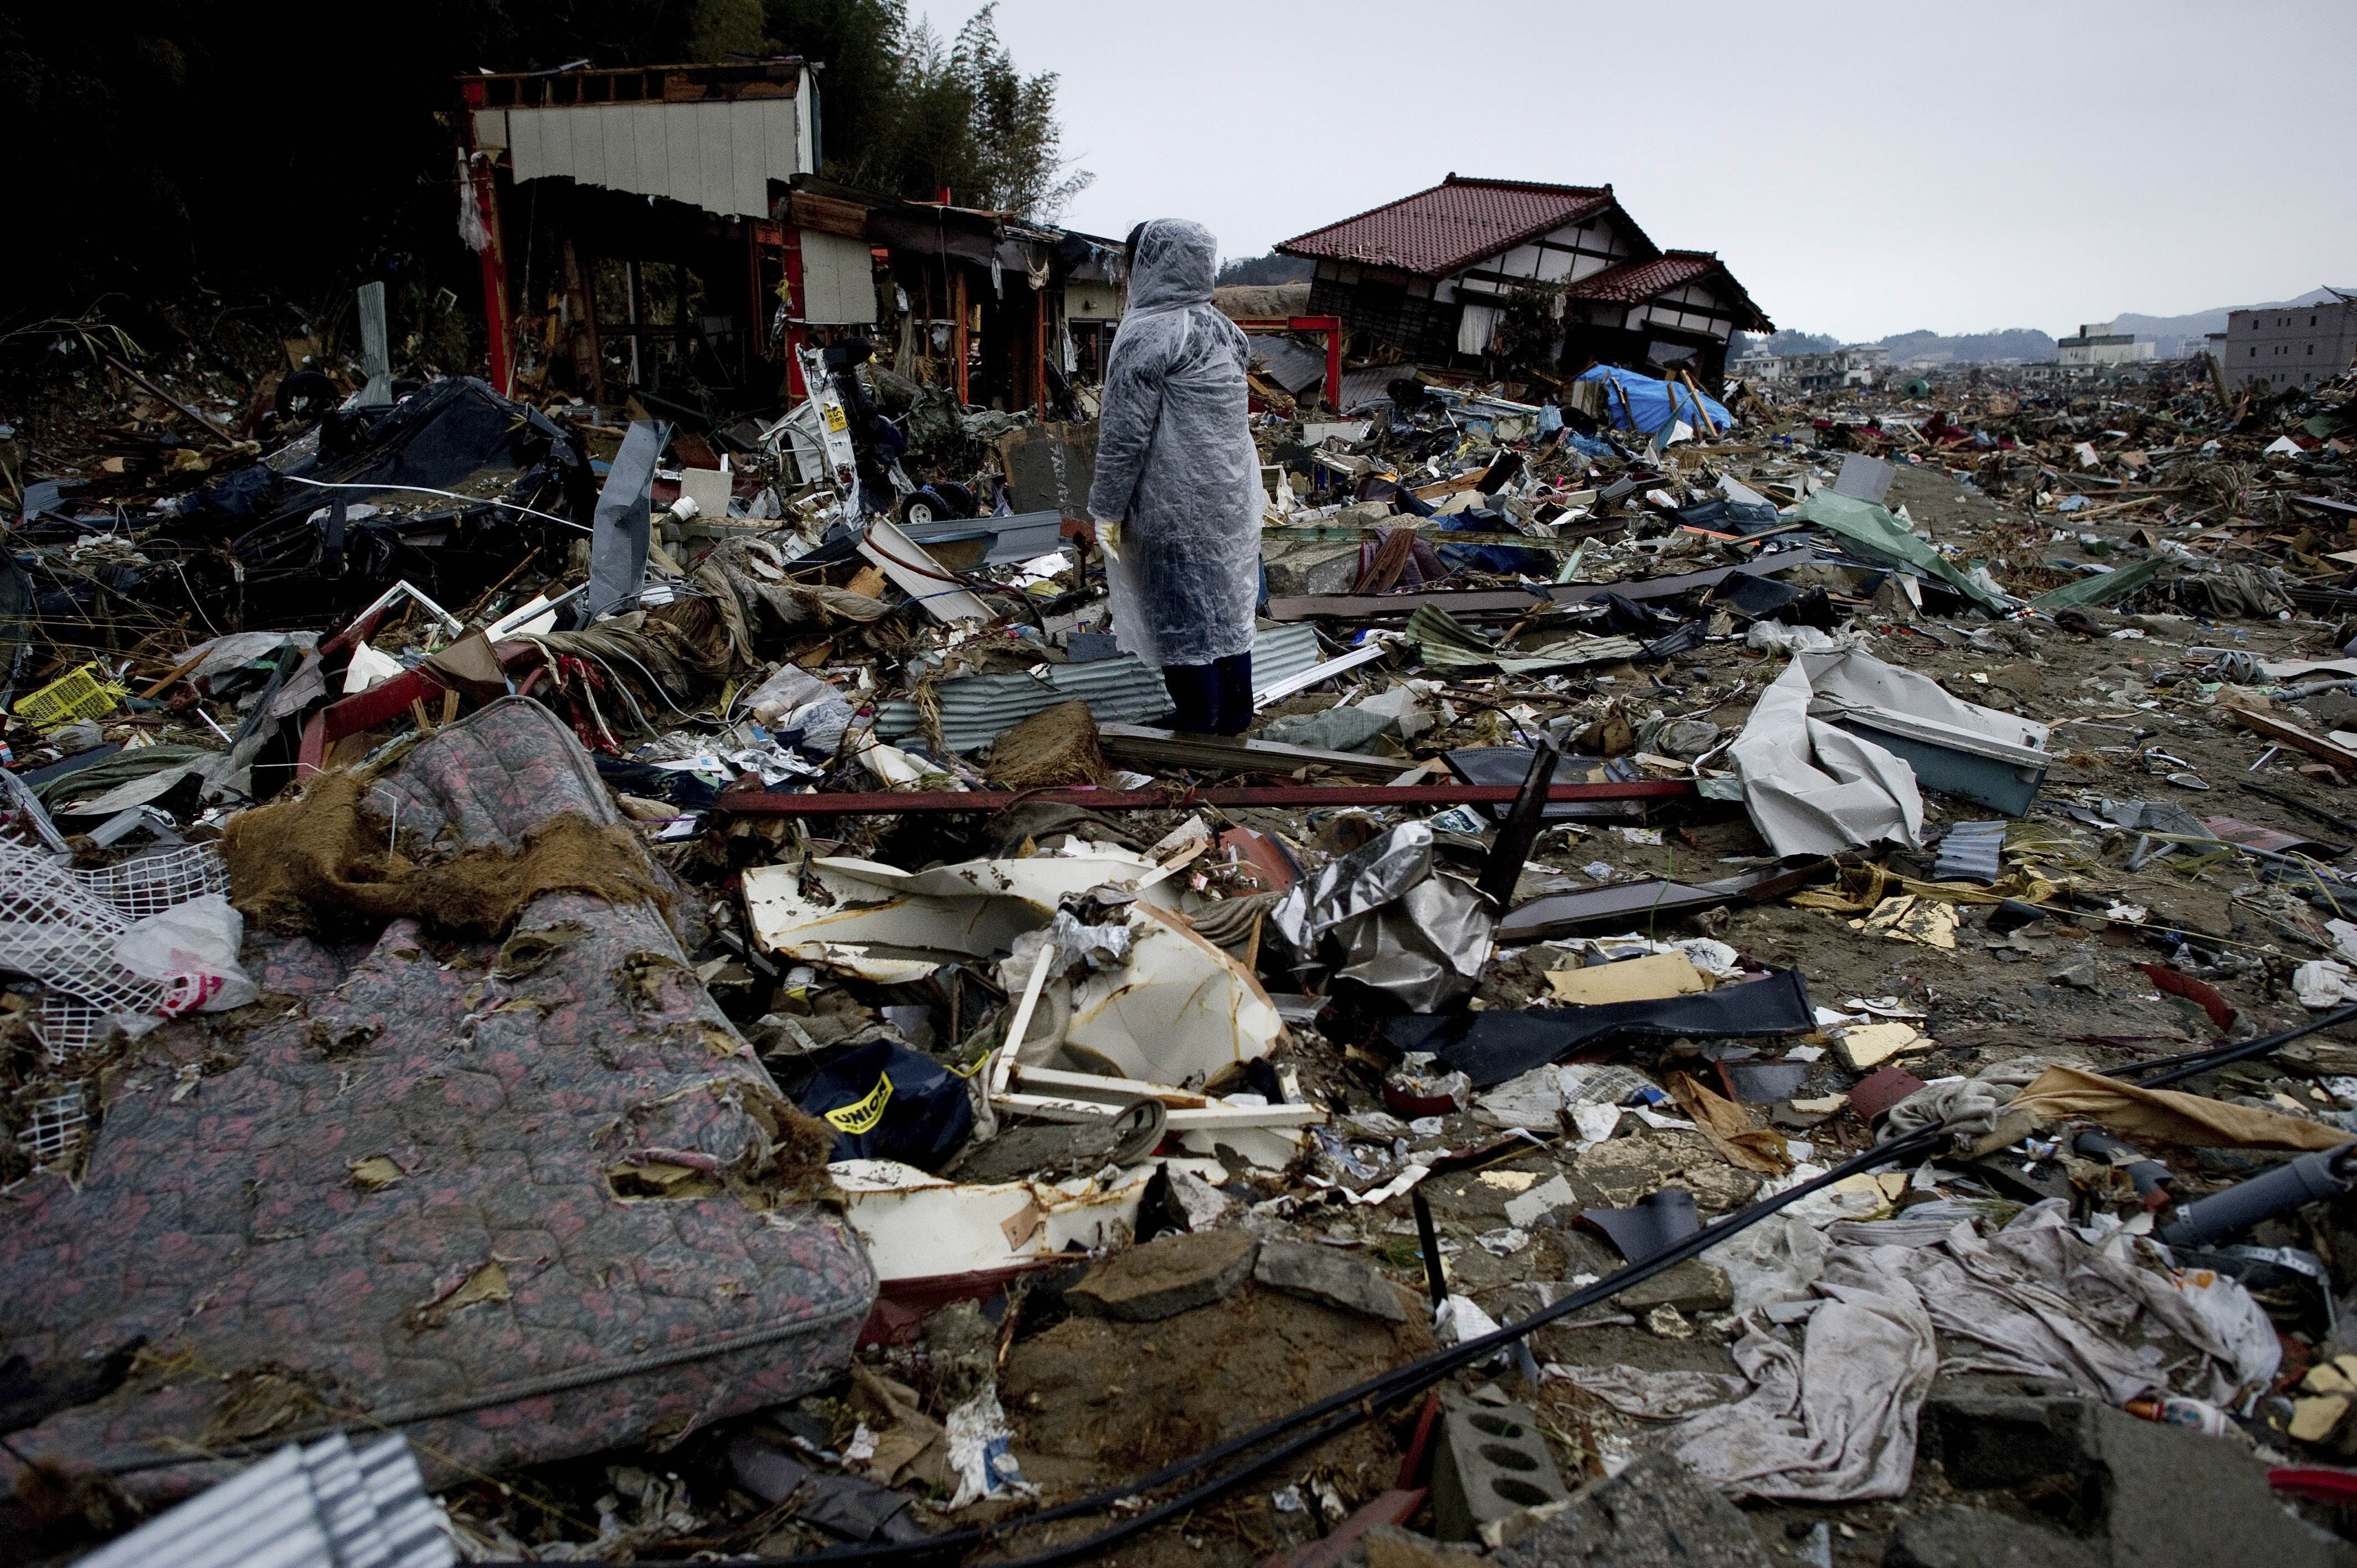 tsunami disaster implication on economy Tsunami's economic impact is tempered  but the sheer scale of dealing with the human tragedy itself could have its own effect on those economies, and other economic costs could also begin .